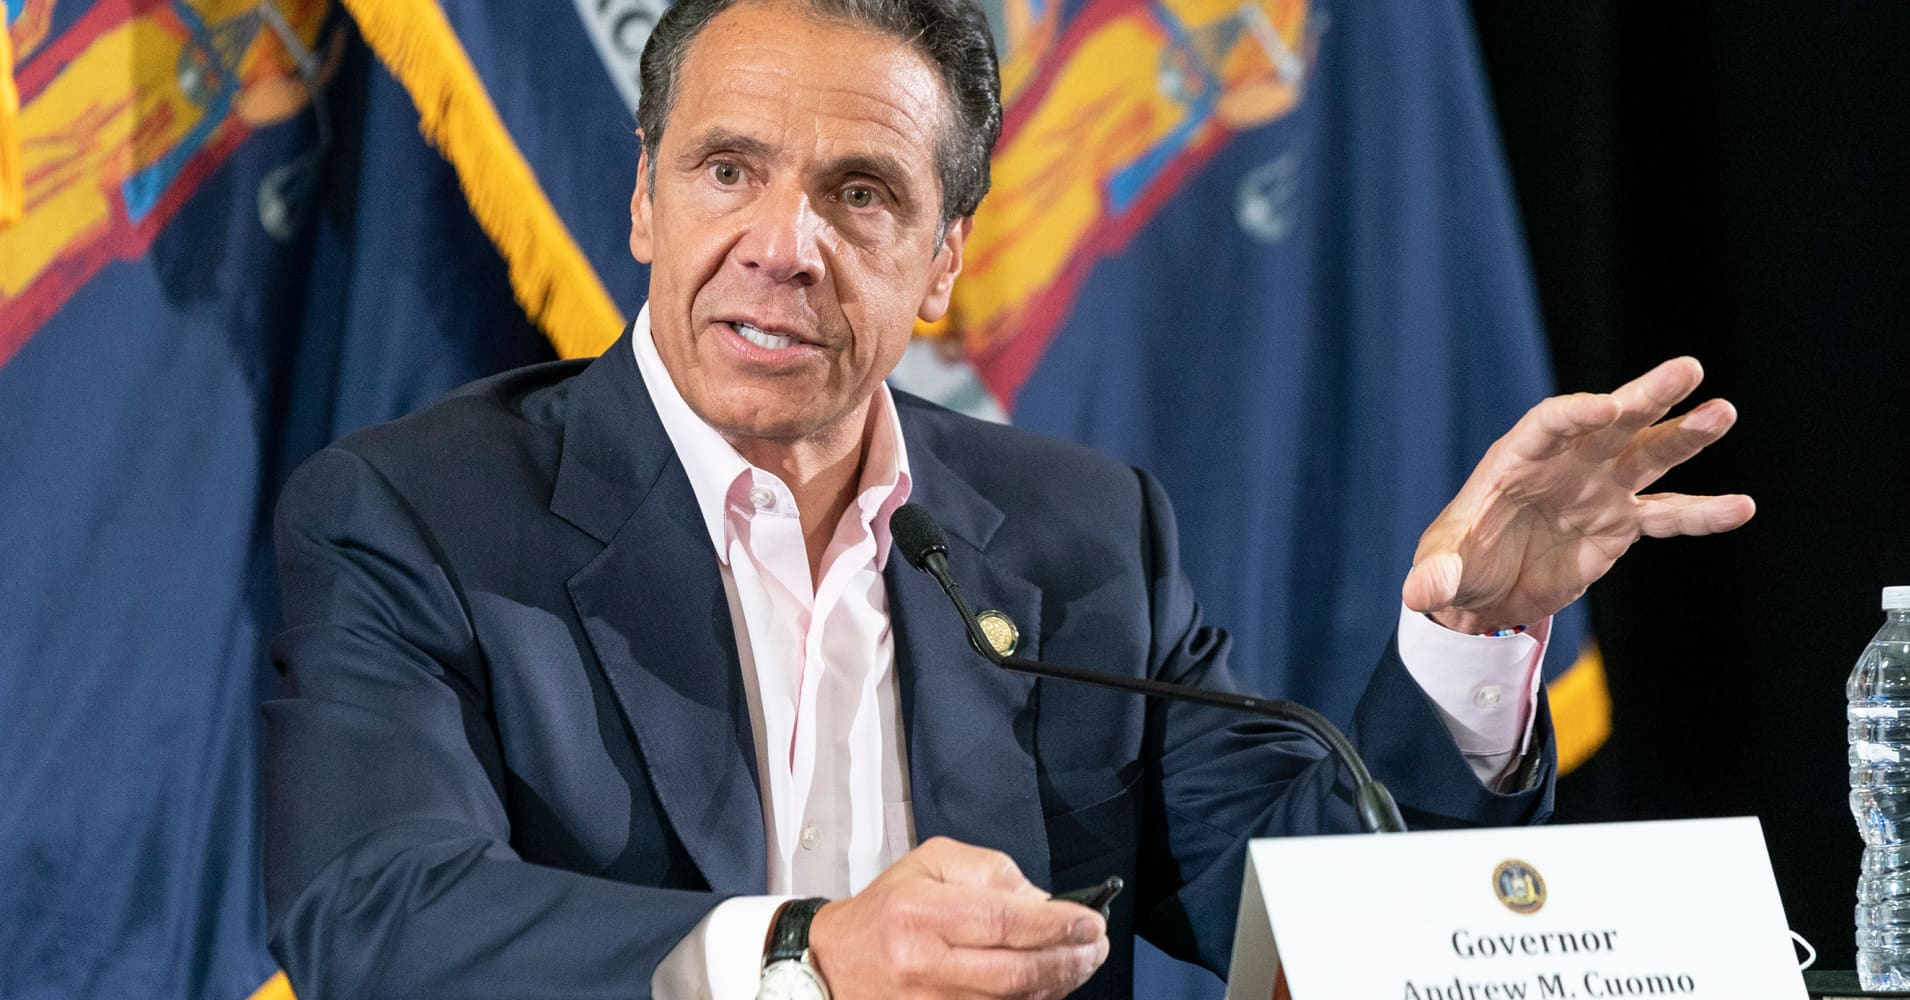 NY Gov. Andrew Cuomo holds press conference on coronavirus amid George Floyd protests